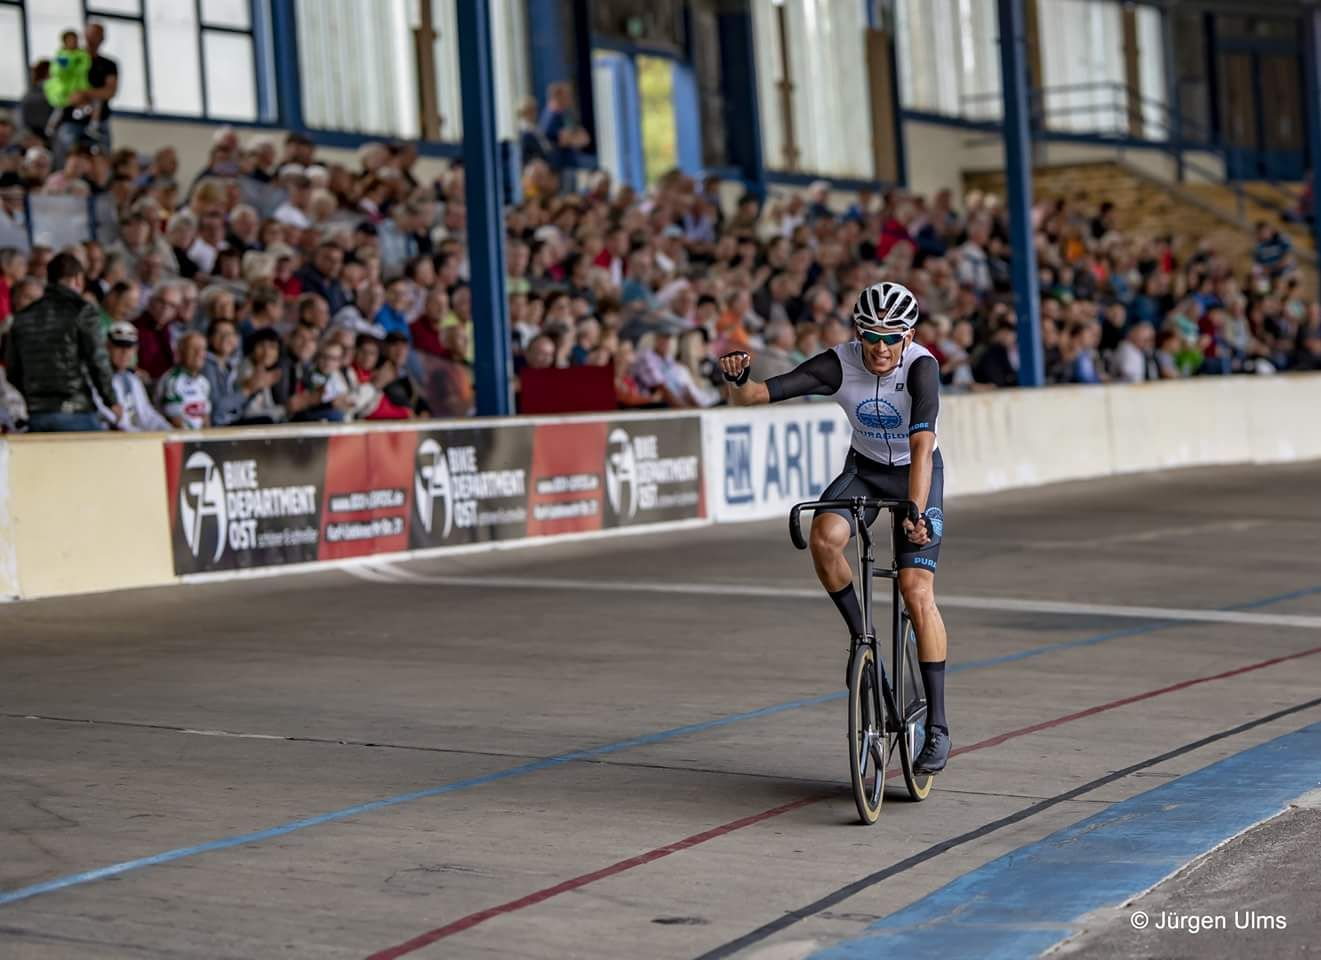 Sponsoring the leading bicycle racing champion Daniel Harnisch, who reached 3rd place at the European Championship, is another proof for the regional engagement.